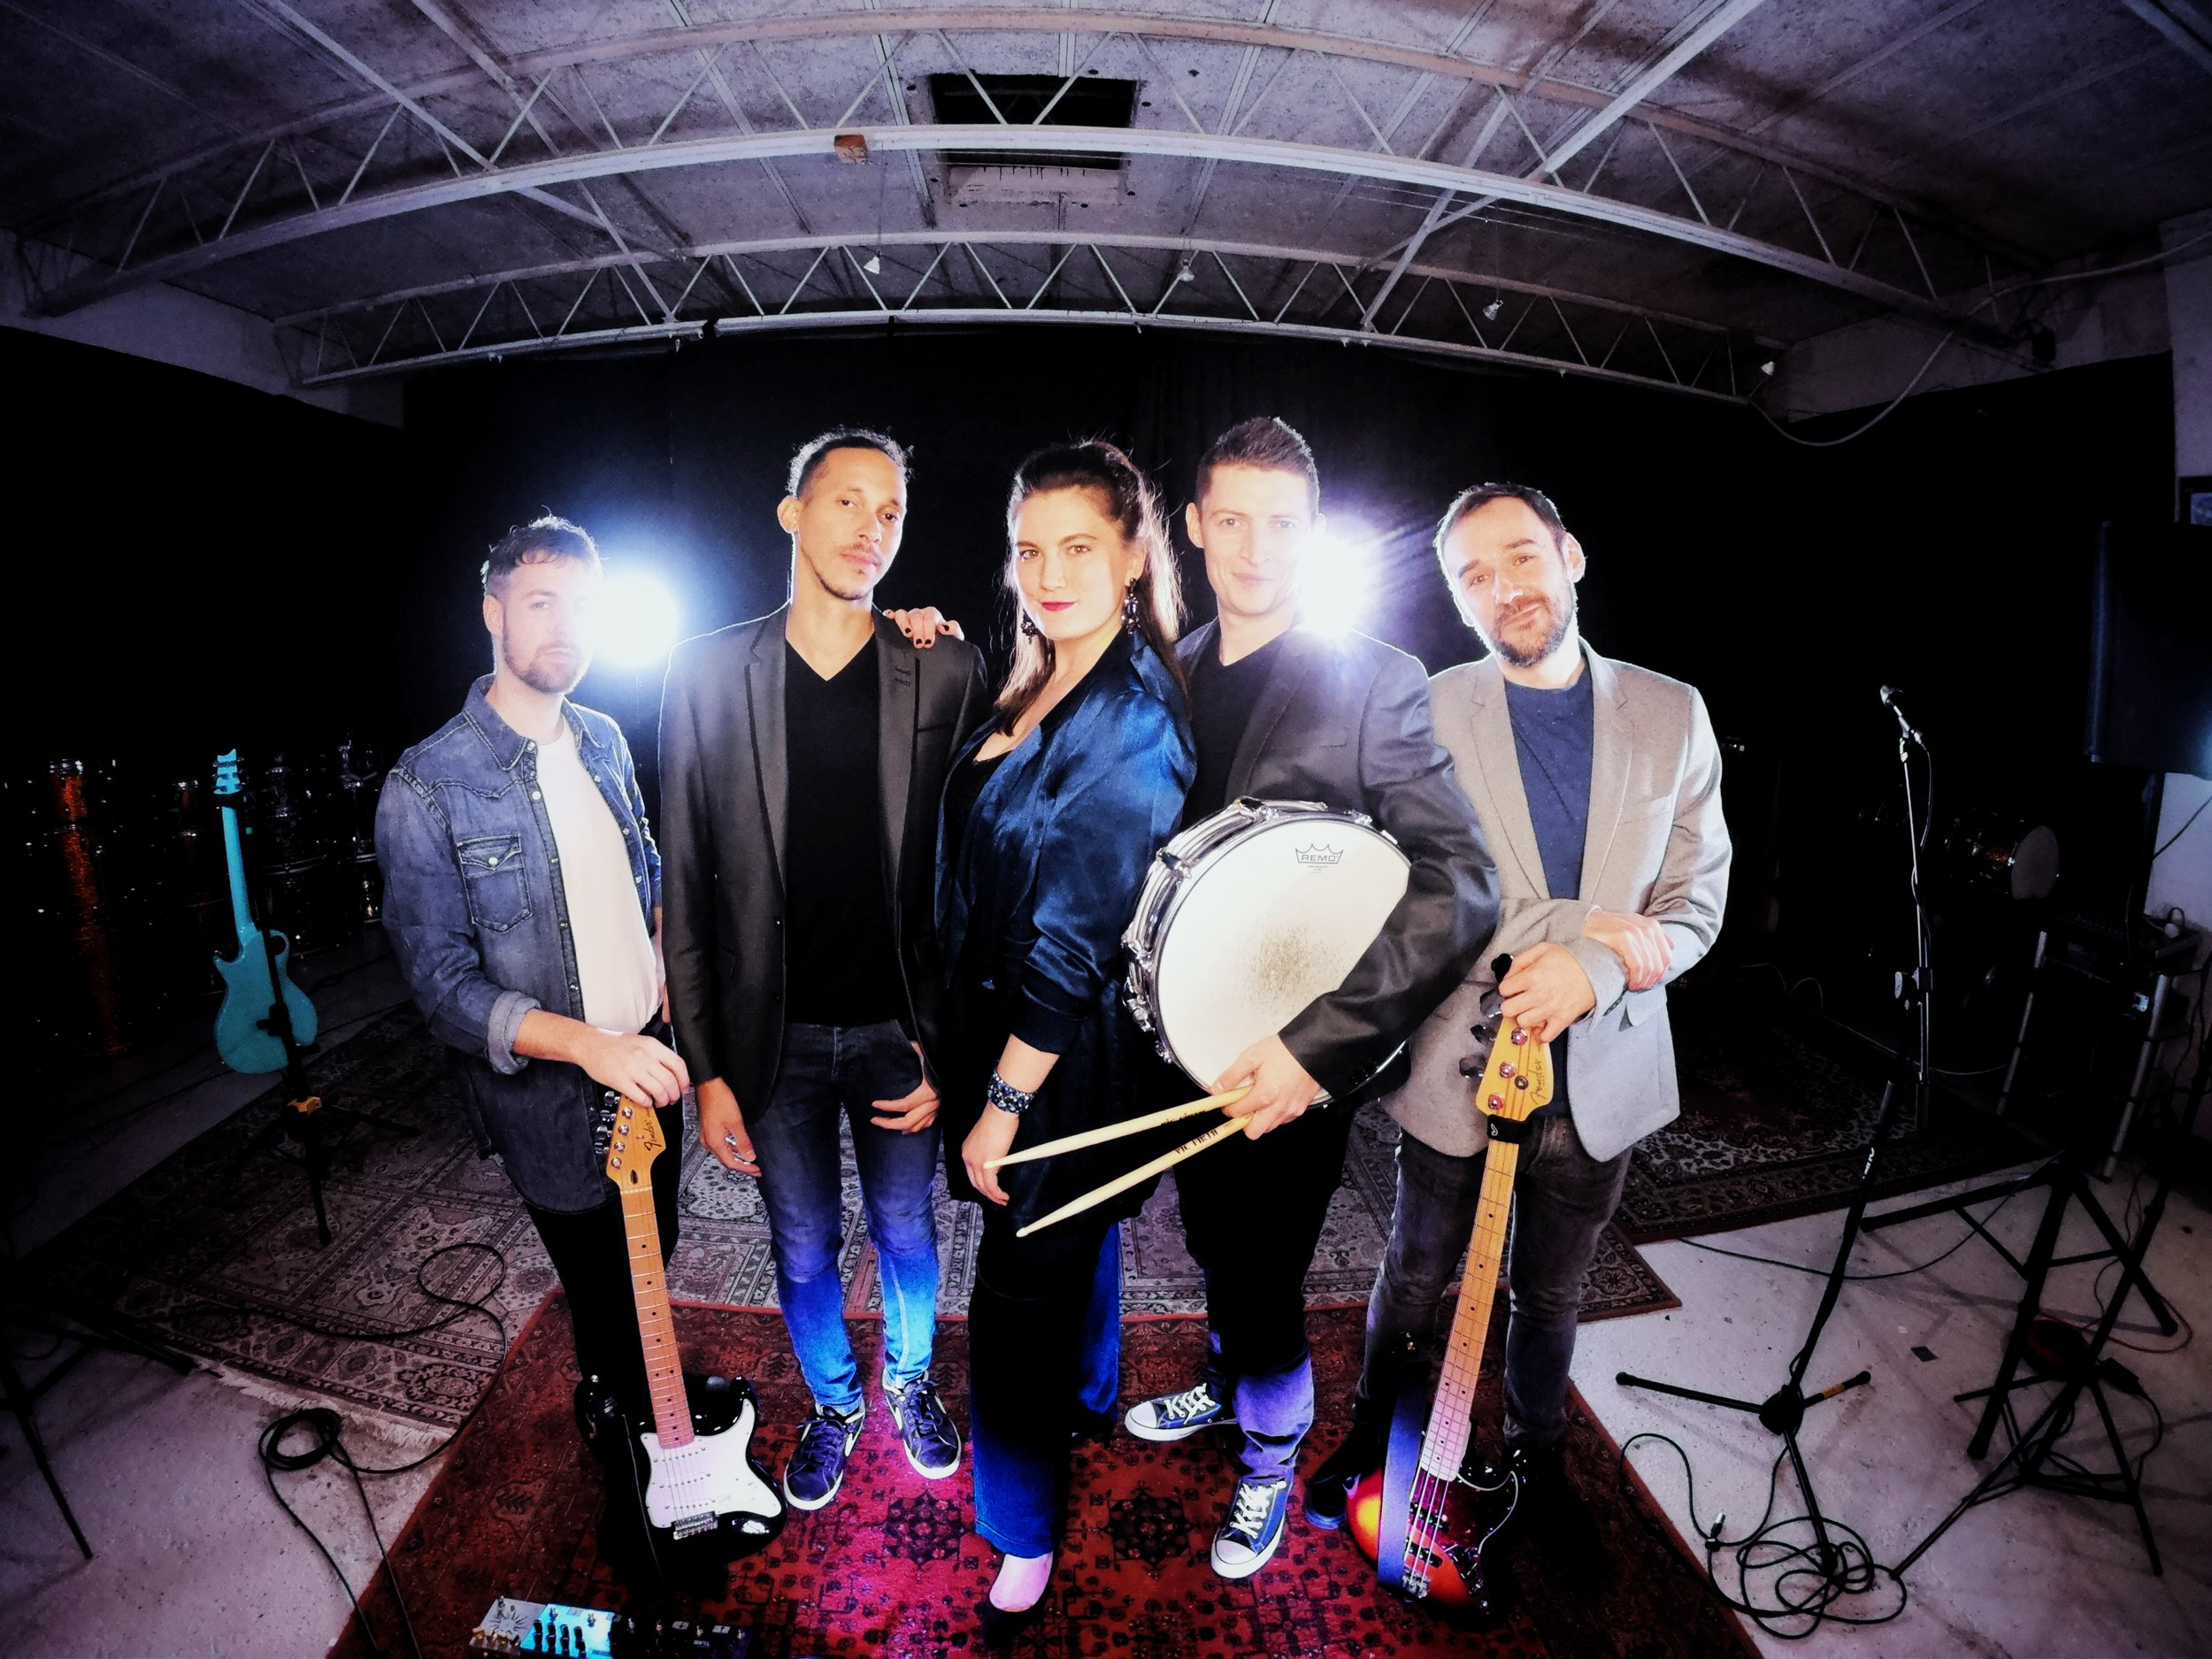 Five-piece band - Male and female vocals, guitar, keyboards, bass guitar and drums.